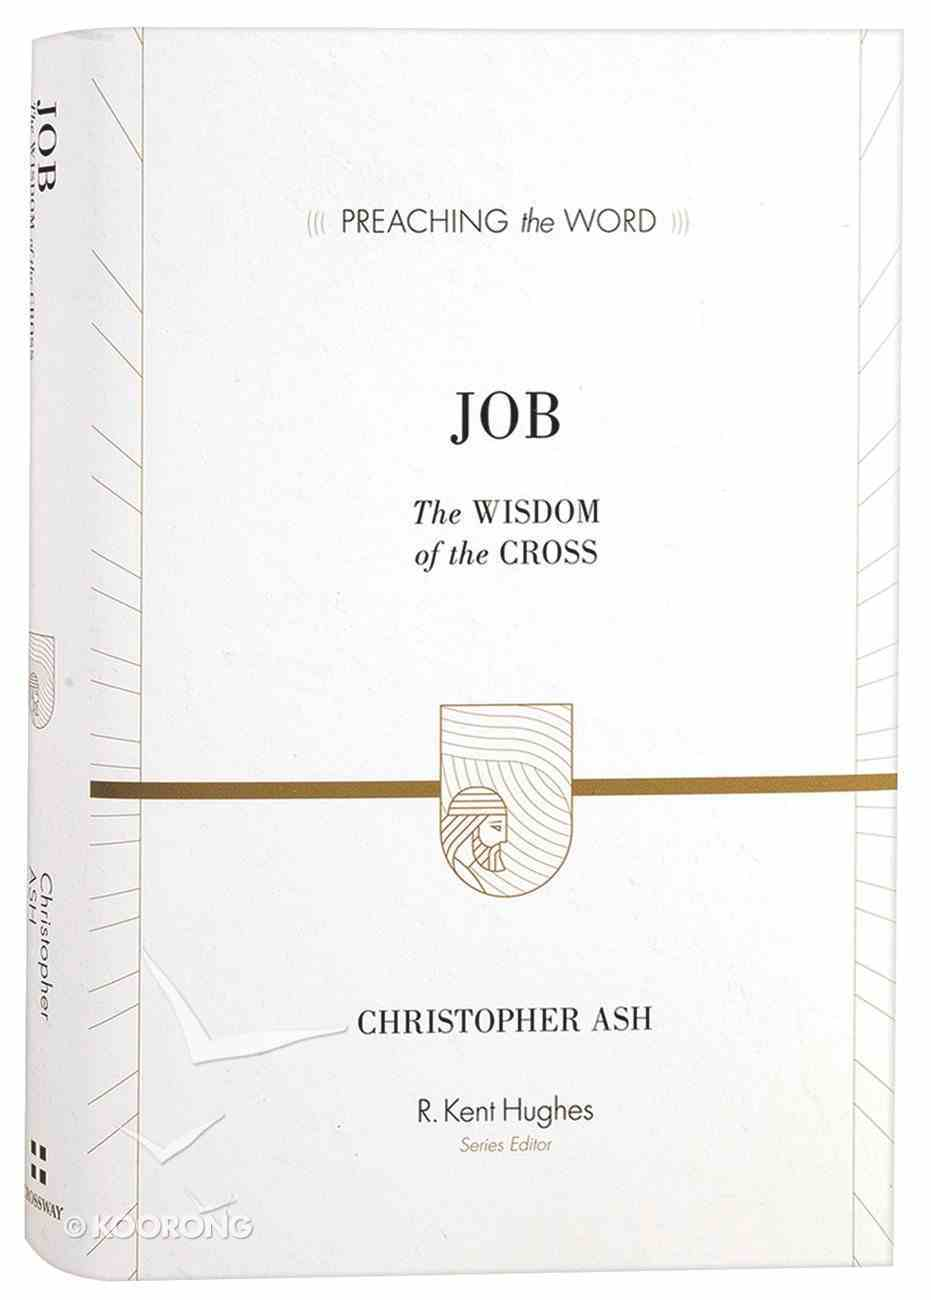 Job - the Wisdom of the Cross (Preaching The Word Series) Hardback